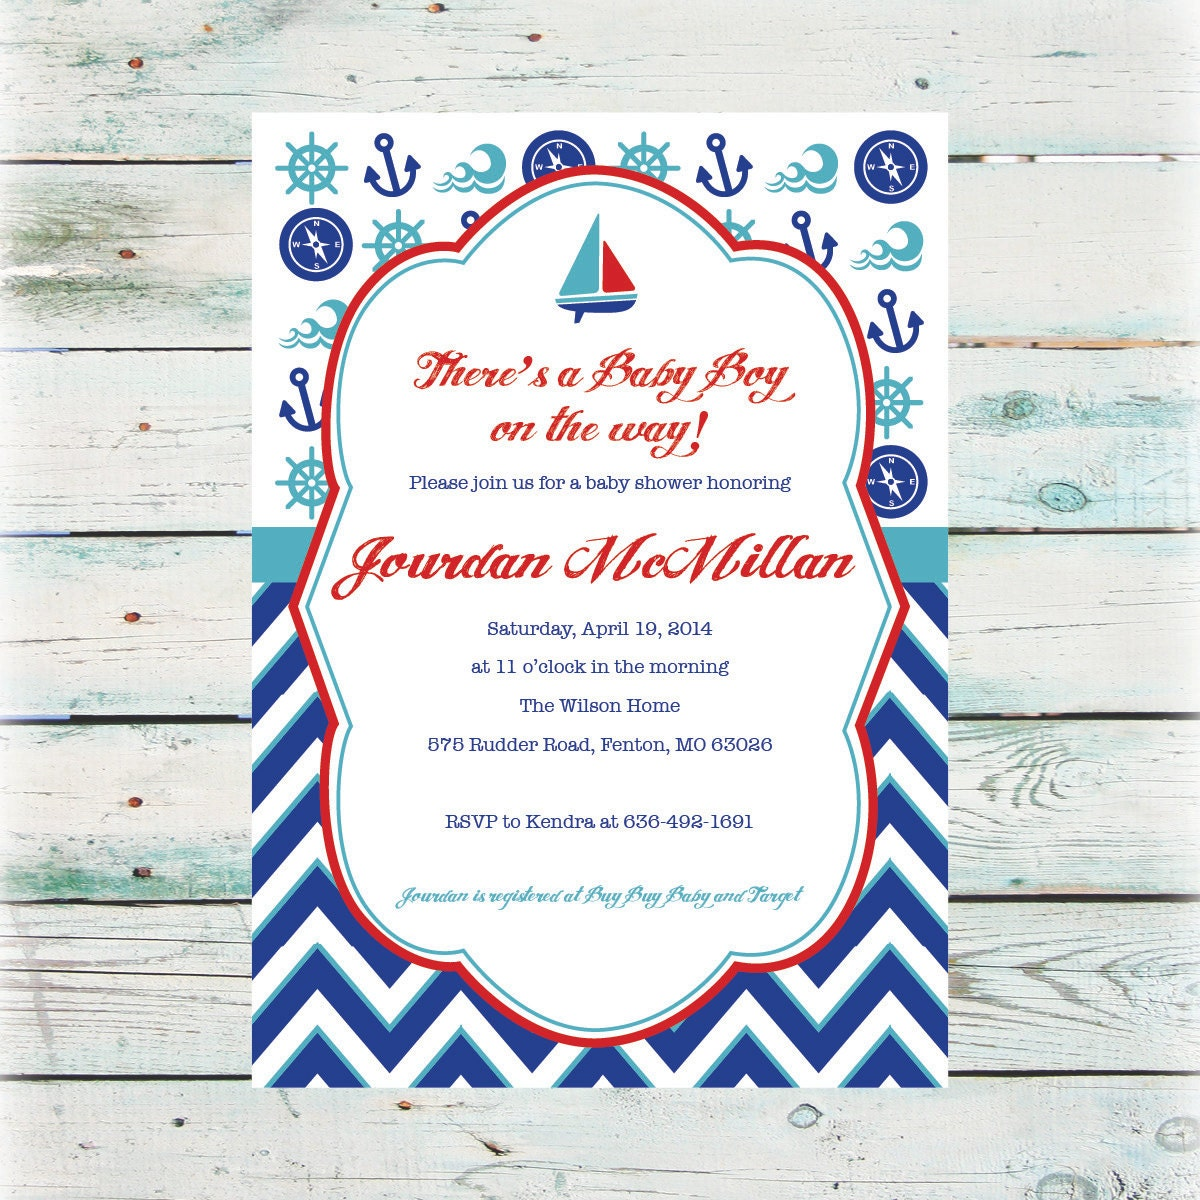 blue diy gold shower baby s it navy pin personalized invitations invite ahoy invitation nautical a boy